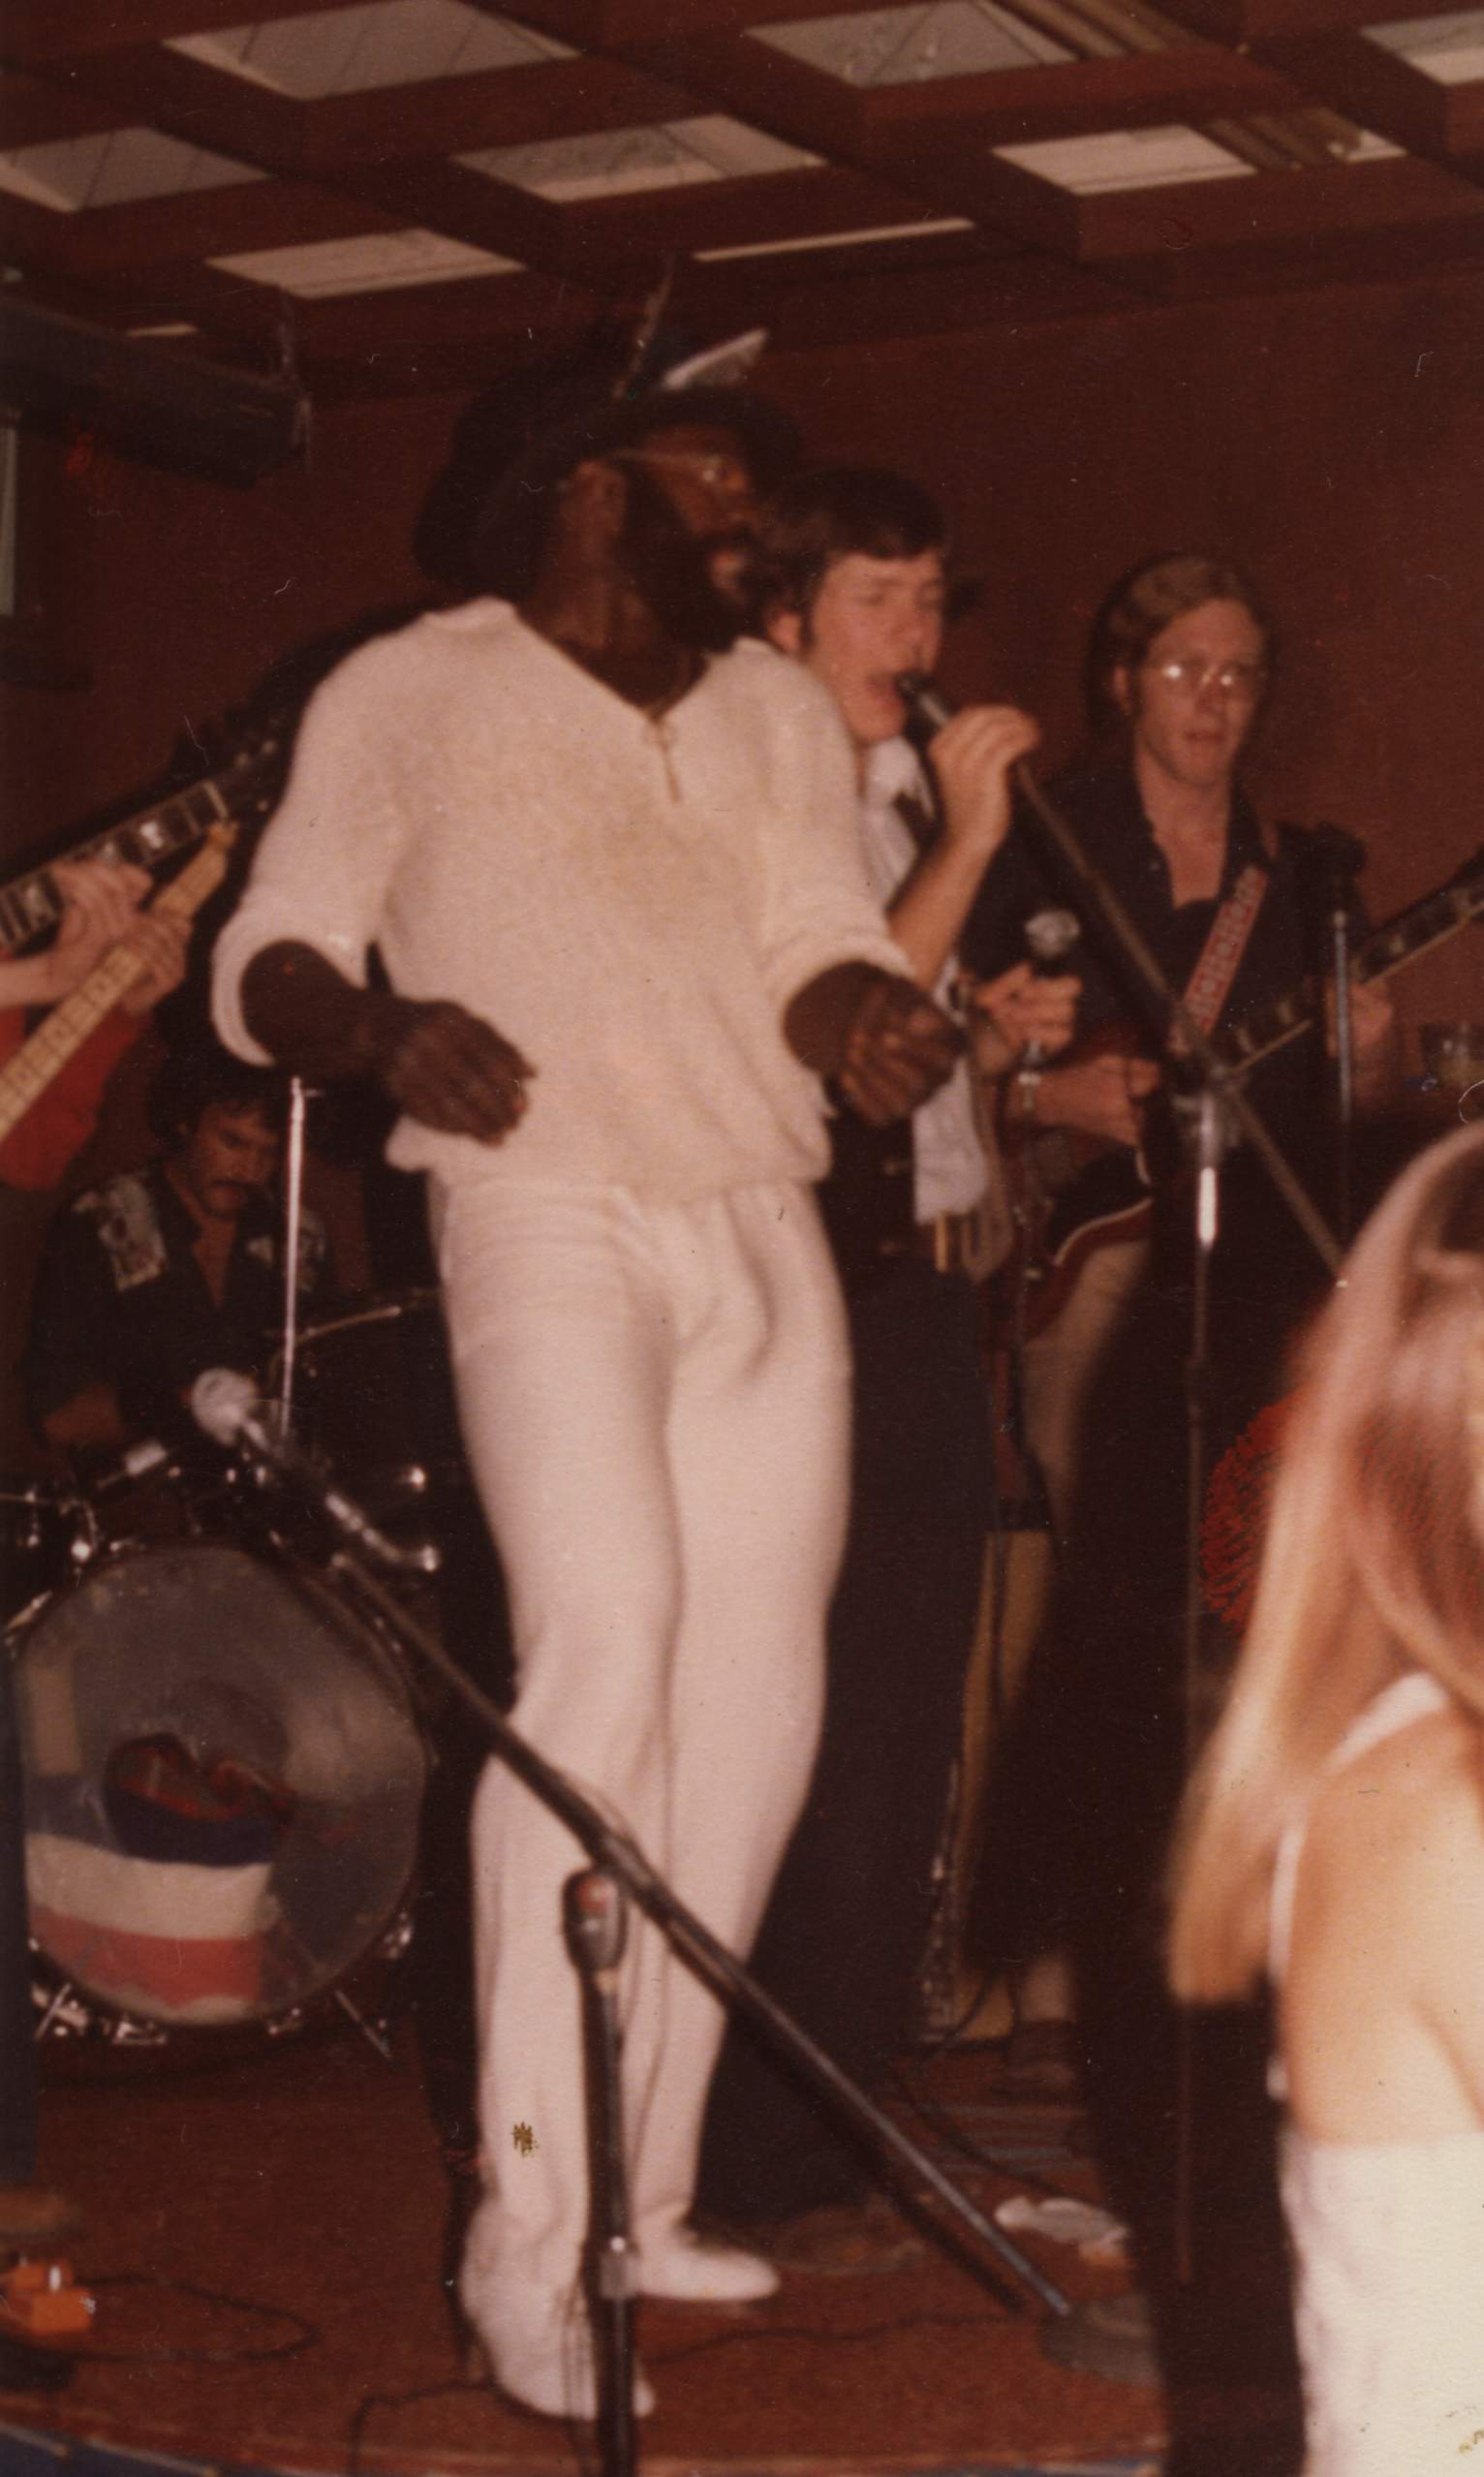 Bo Connelly with Mitch Faber and John Trombitas at the Sausalito Crusing Club, 1977